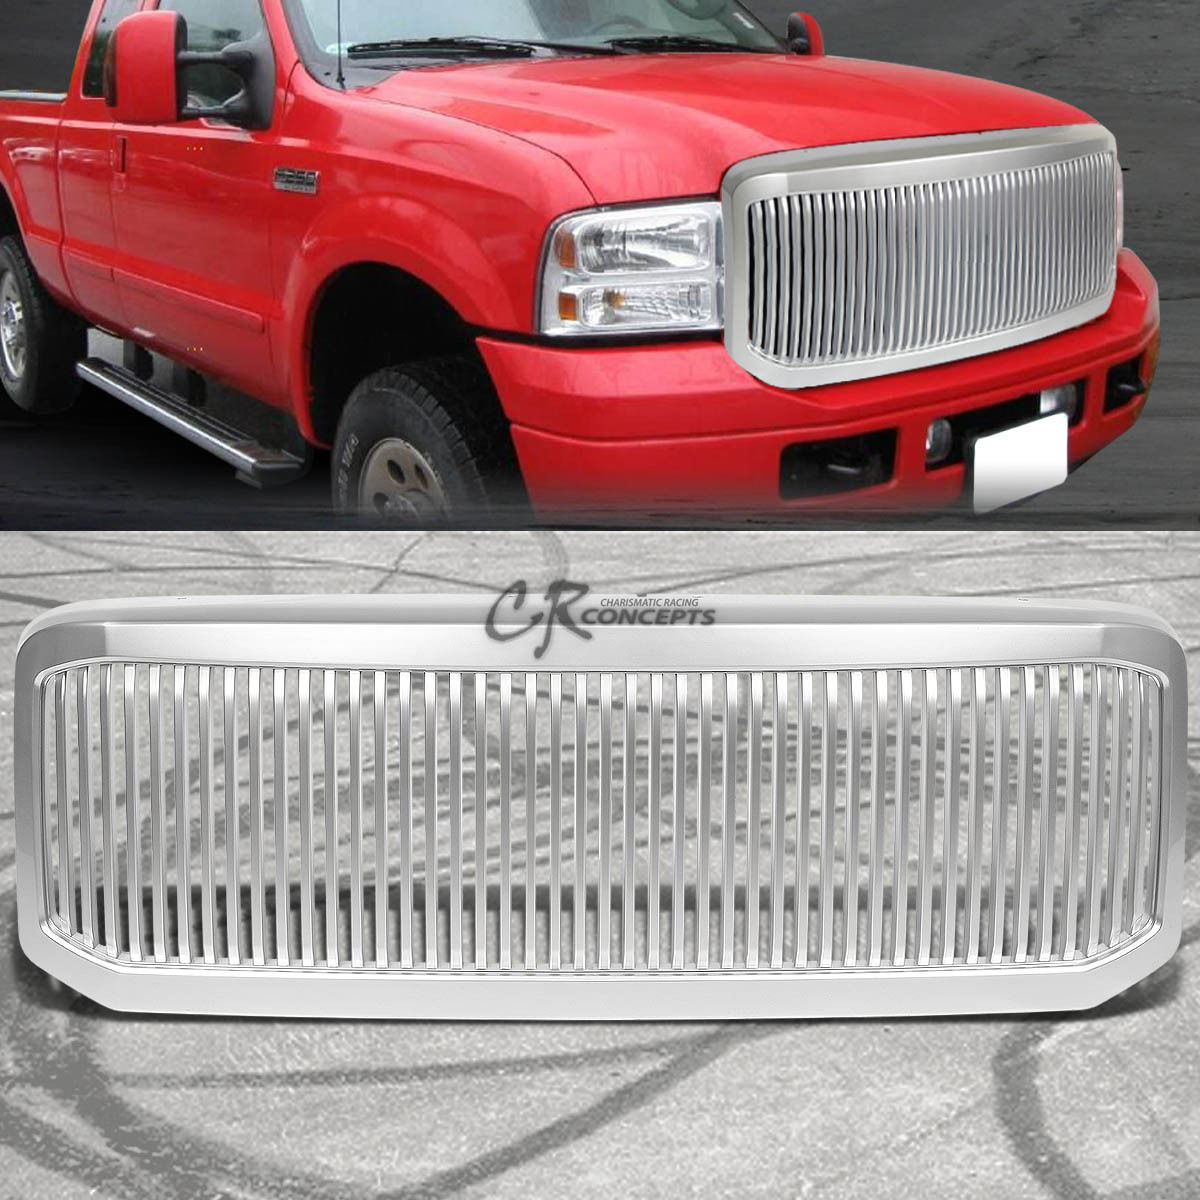 グリル FOR 05-07 FORD F250 / F350スーパーデューティシルバー前面交換グリル/グリルガード FOR 05-07 FORD F250/F350 SUPER DUTY SILVER FRONT REPLACEMENT GRILL/GRILLE GUARD